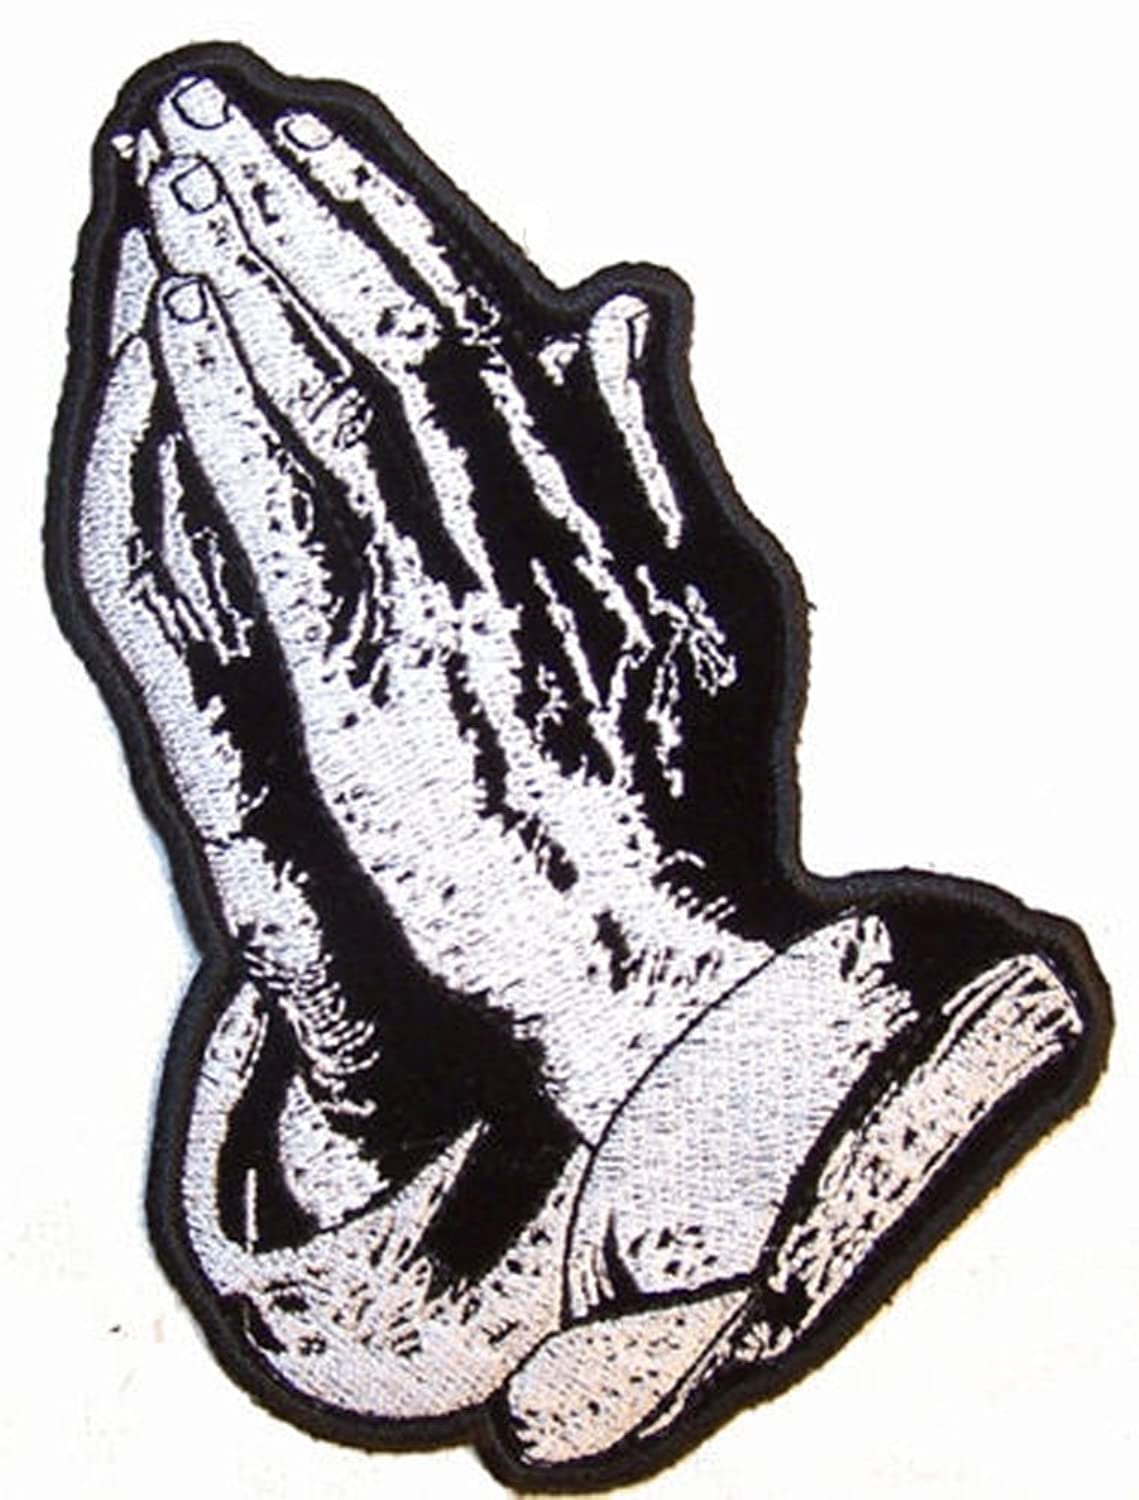 Religious Praying Hands - Novelty Embroidered Biker Jacket Patch - Iron on Backing or Sew On